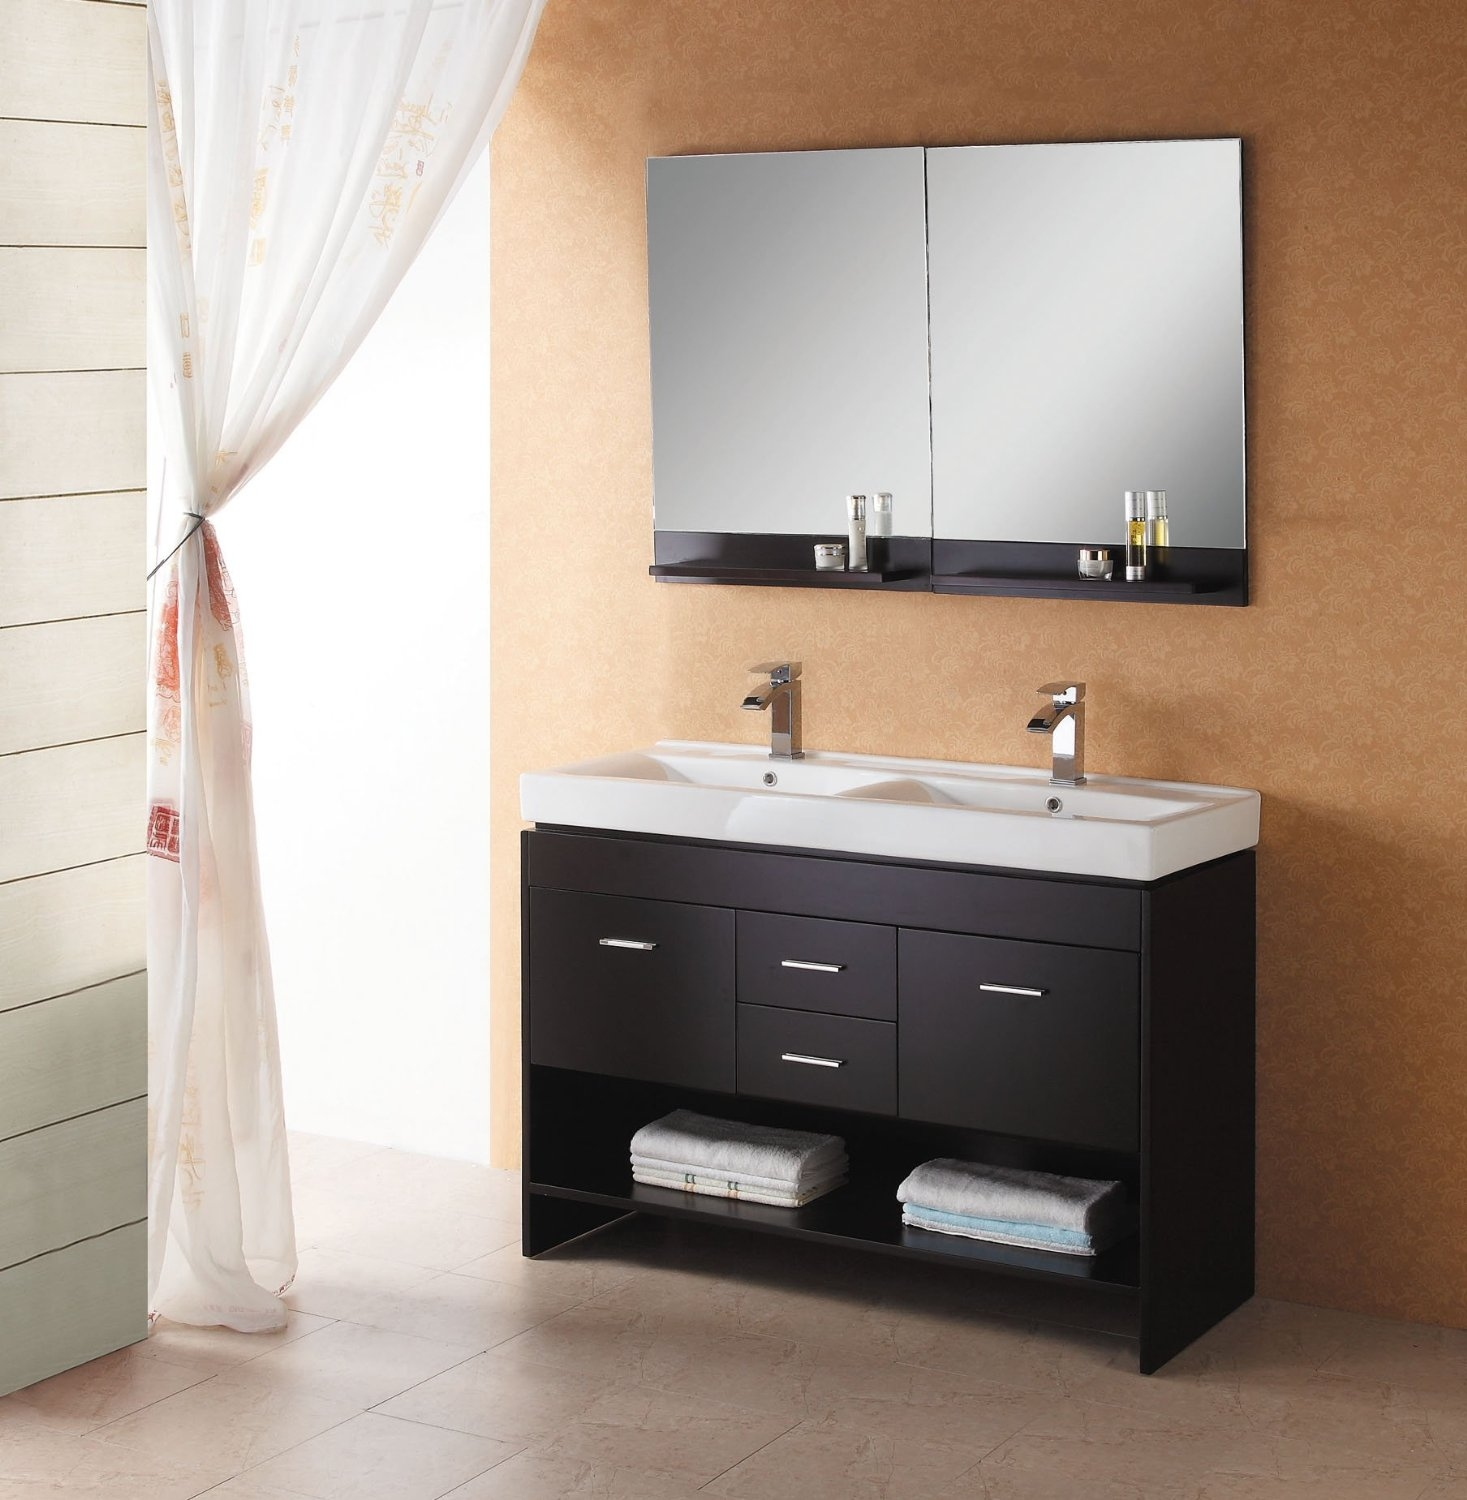 Bathroom Vanities With Drawers And Shelves